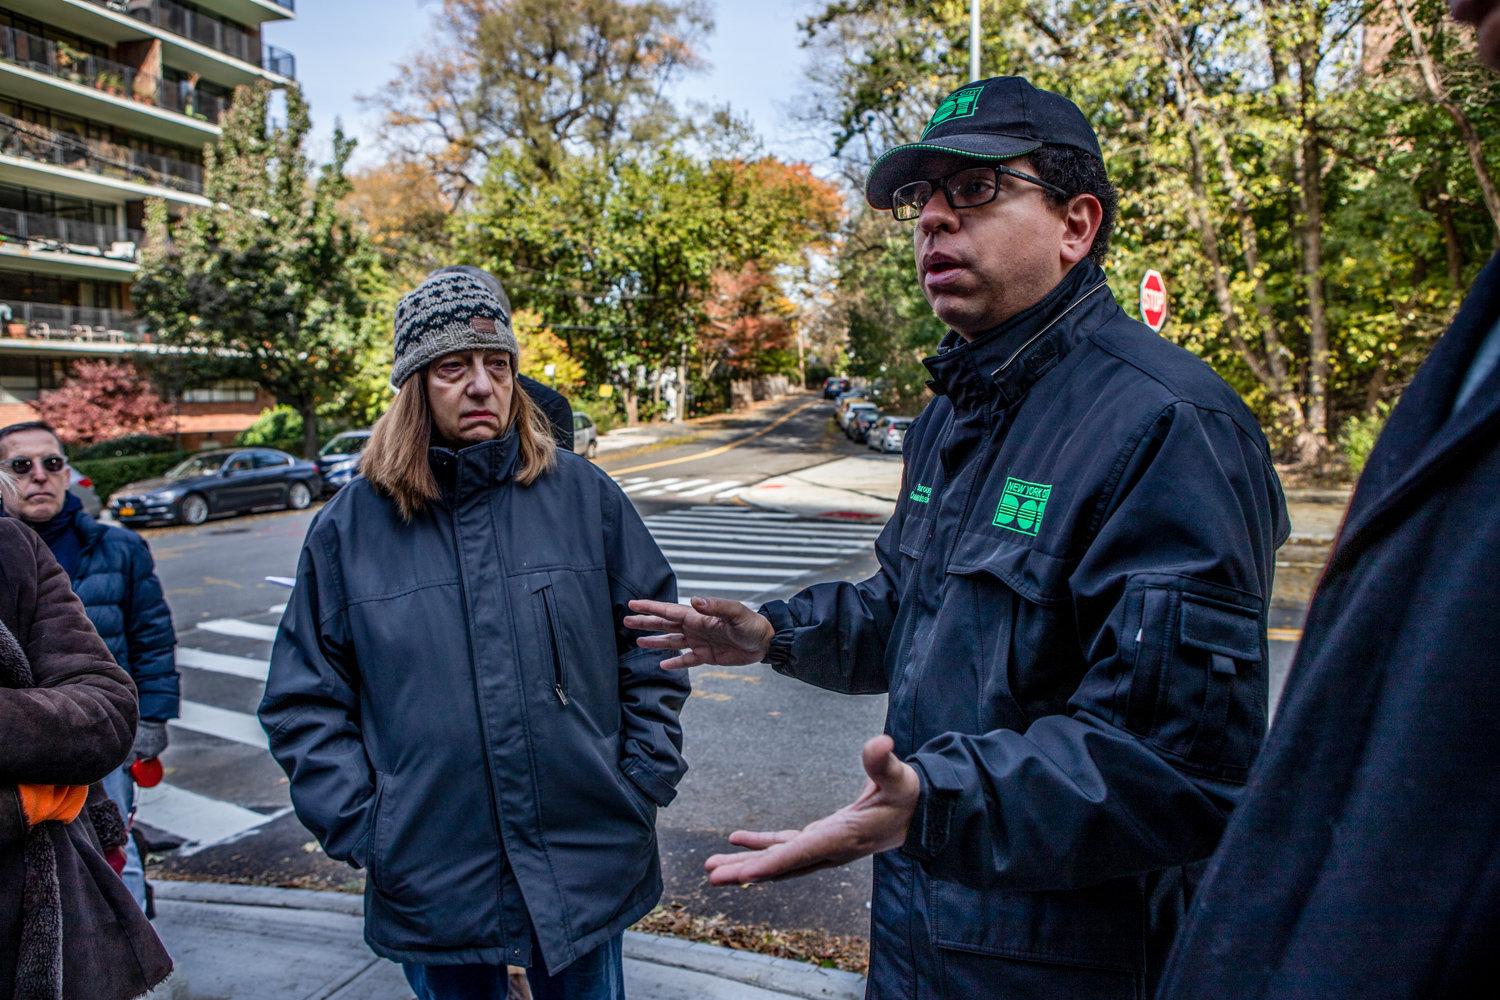 Nivardo Lopez, Bronx borough commissioner for the city's transportation department, accepts responsibility for not doing enough community outreach about the changes to the intersection of Kappock Street and Palisade Avenue during a meeting there Nov. 9.